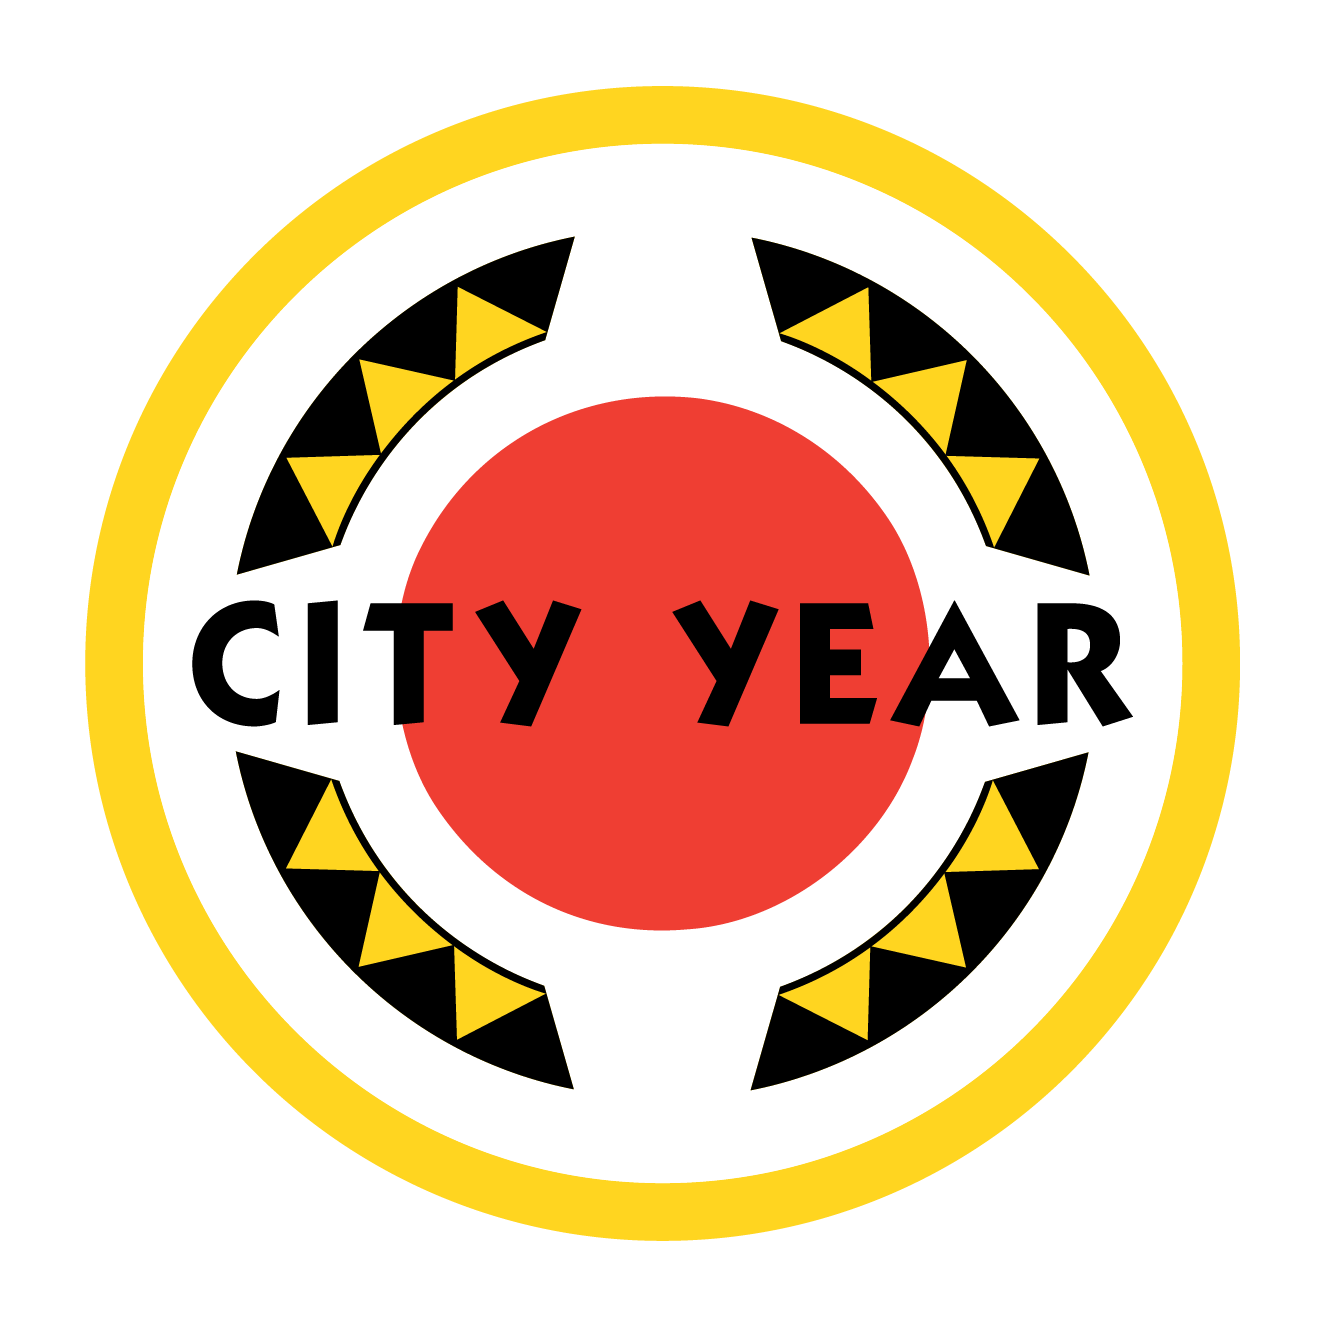 City Year, Inc.